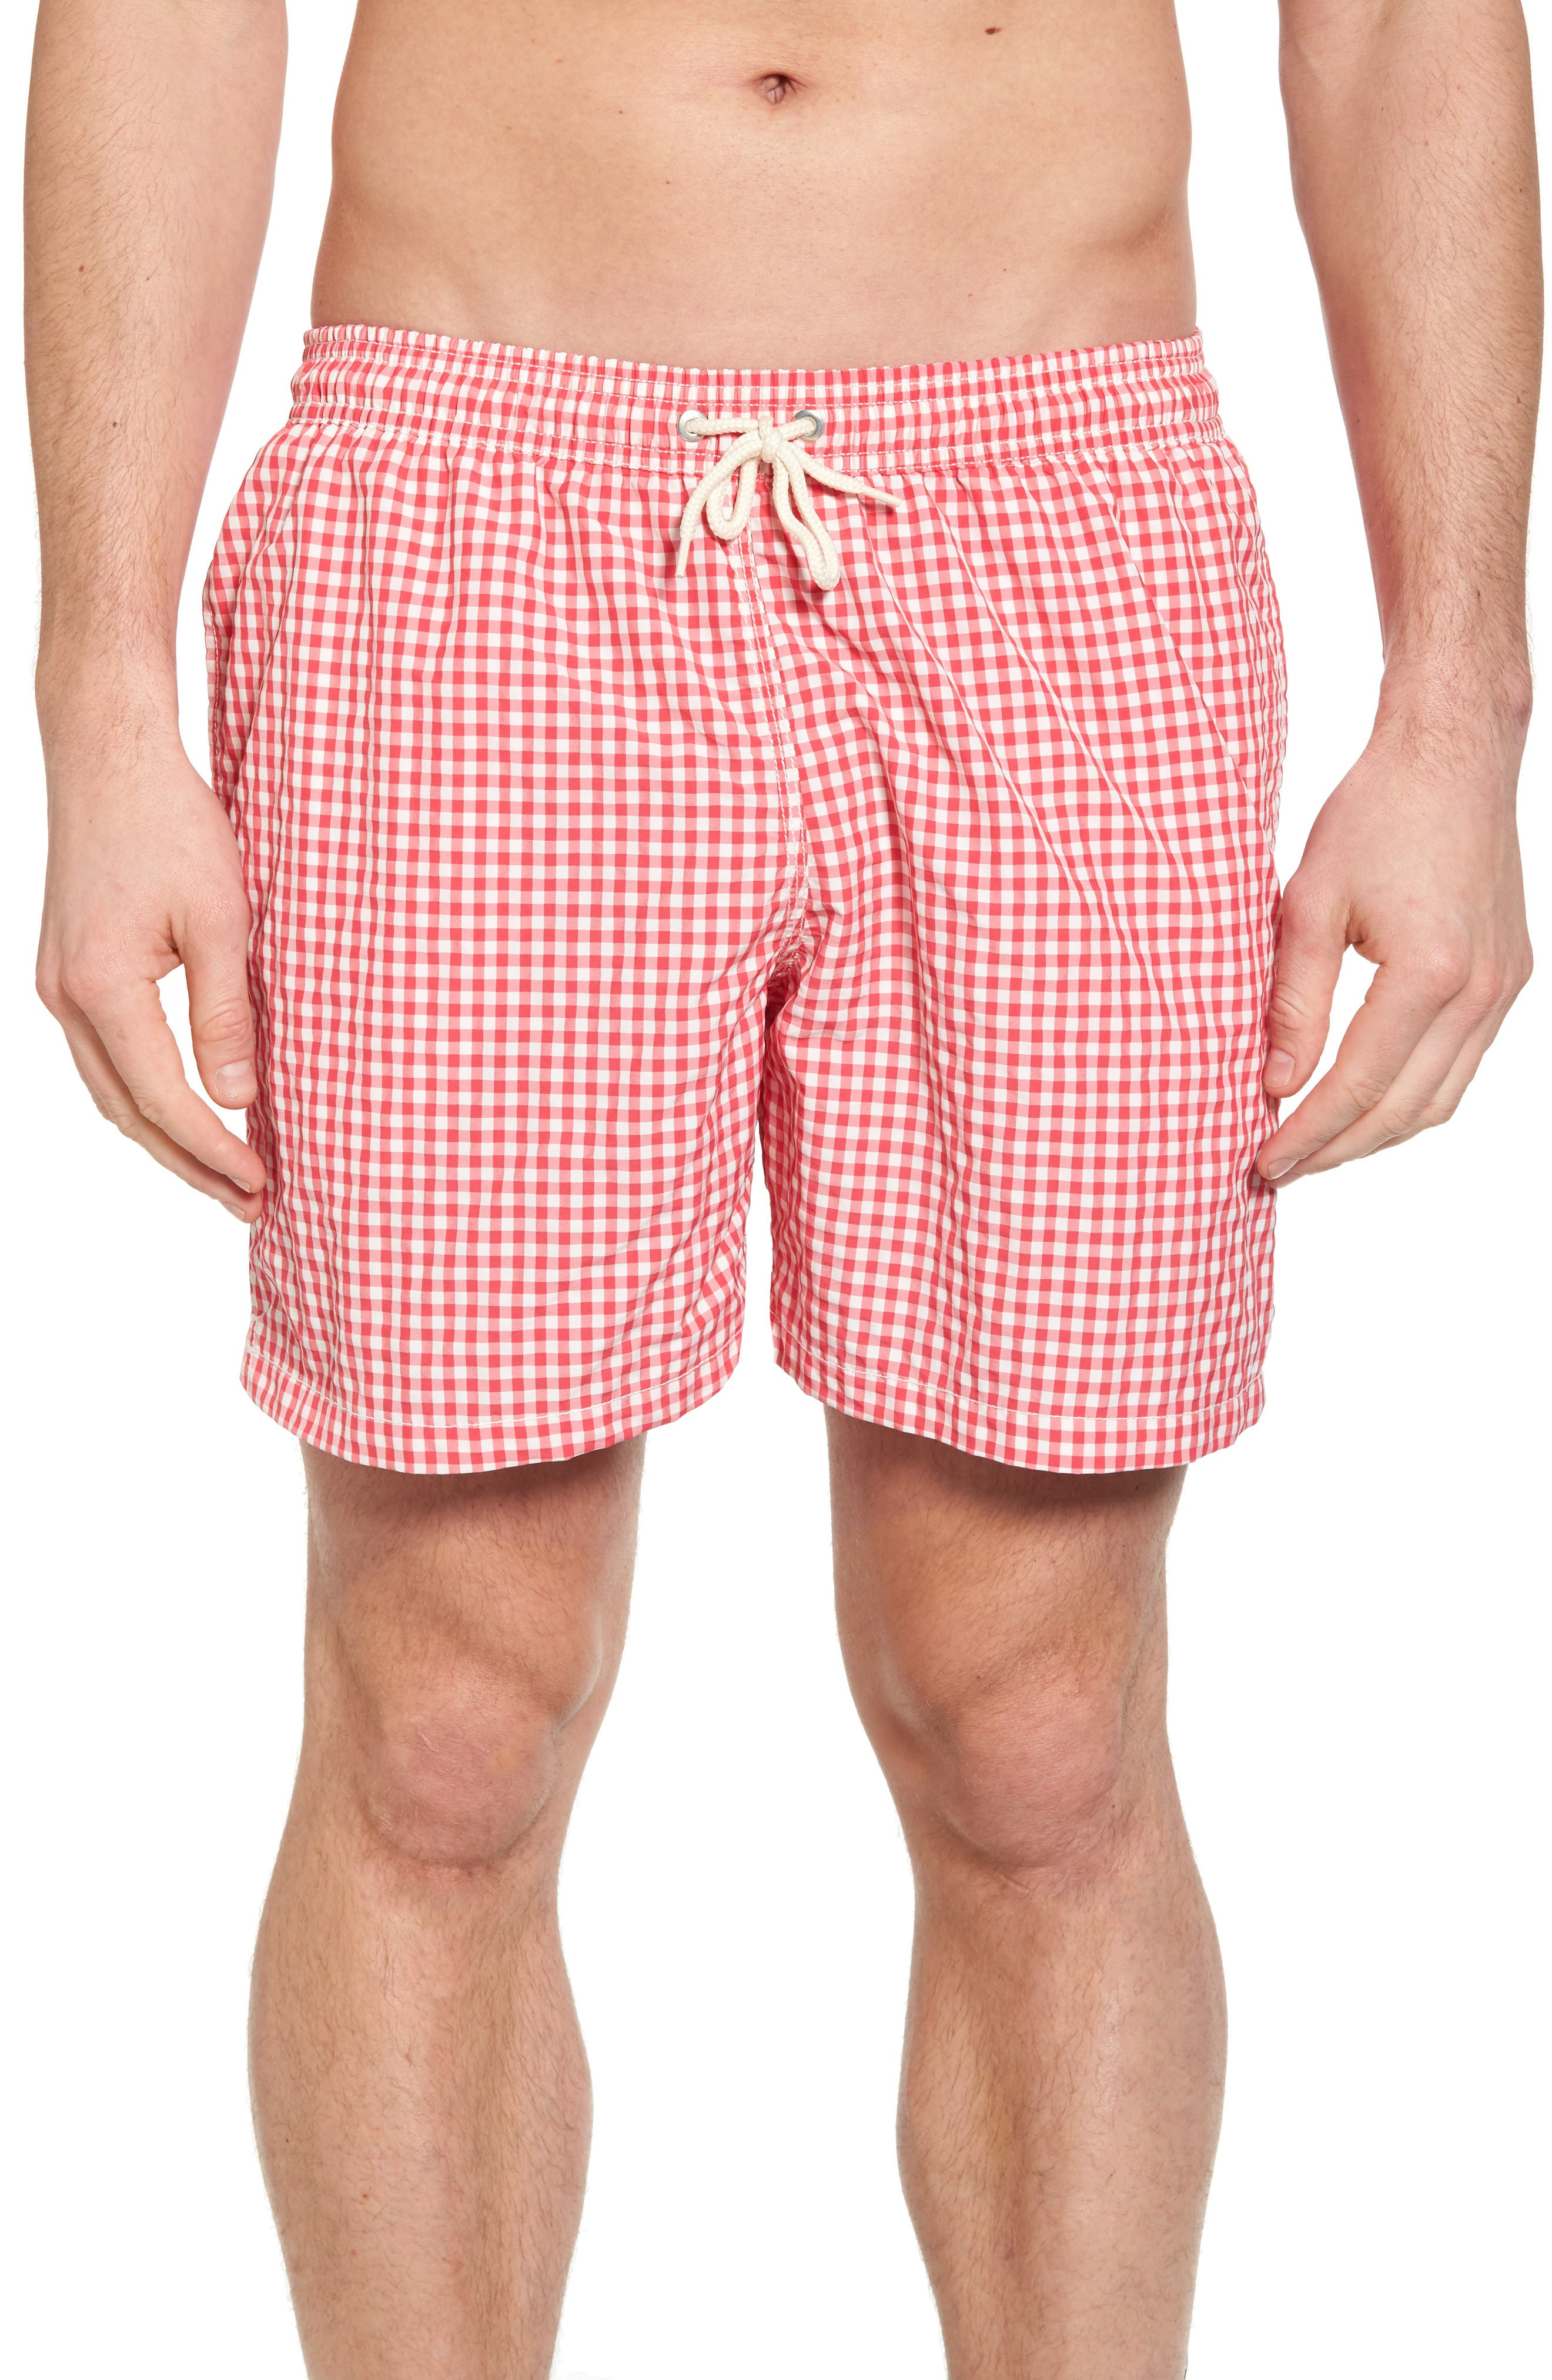 Barbour Gingham Check Swim Trunks, Pink